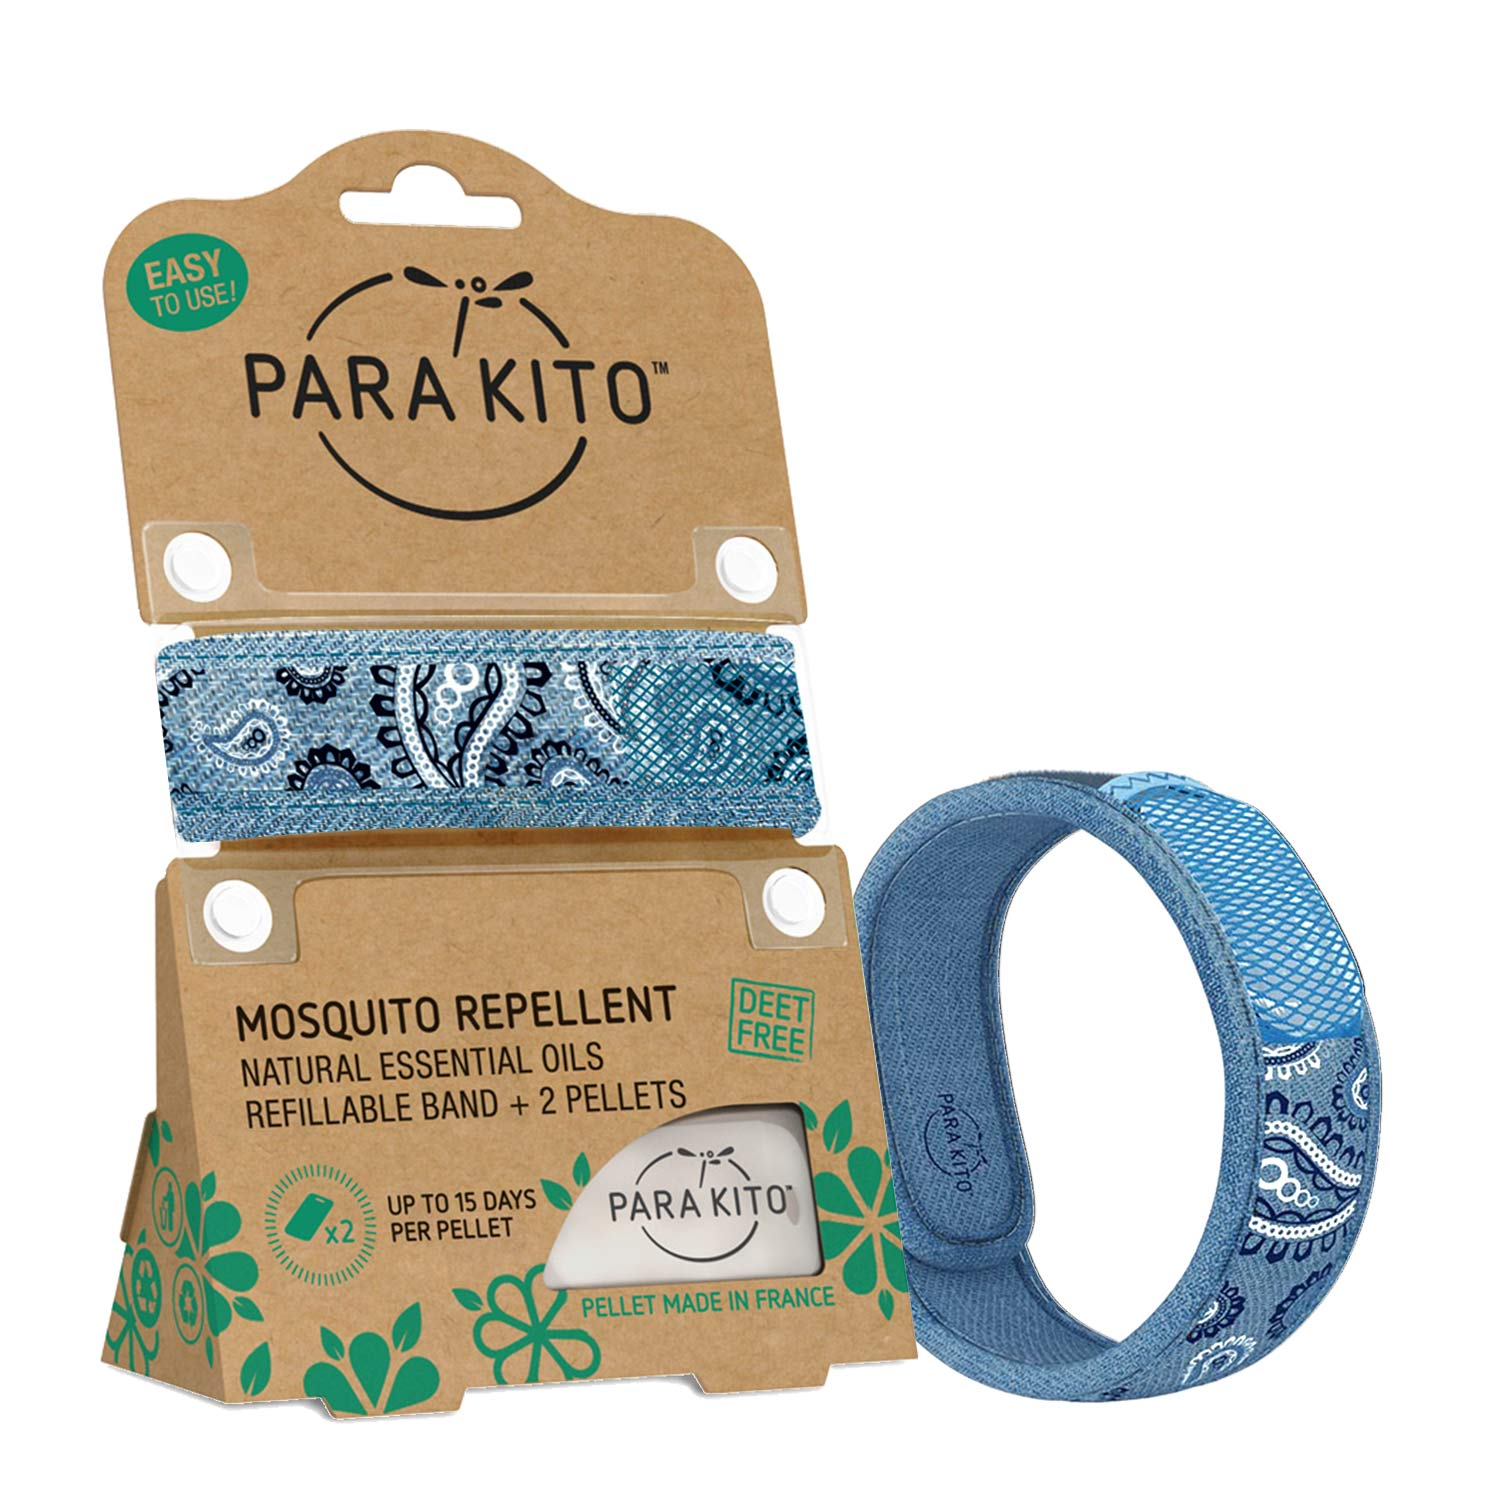 Mosquito Repellent Wristband - Blue Jeans